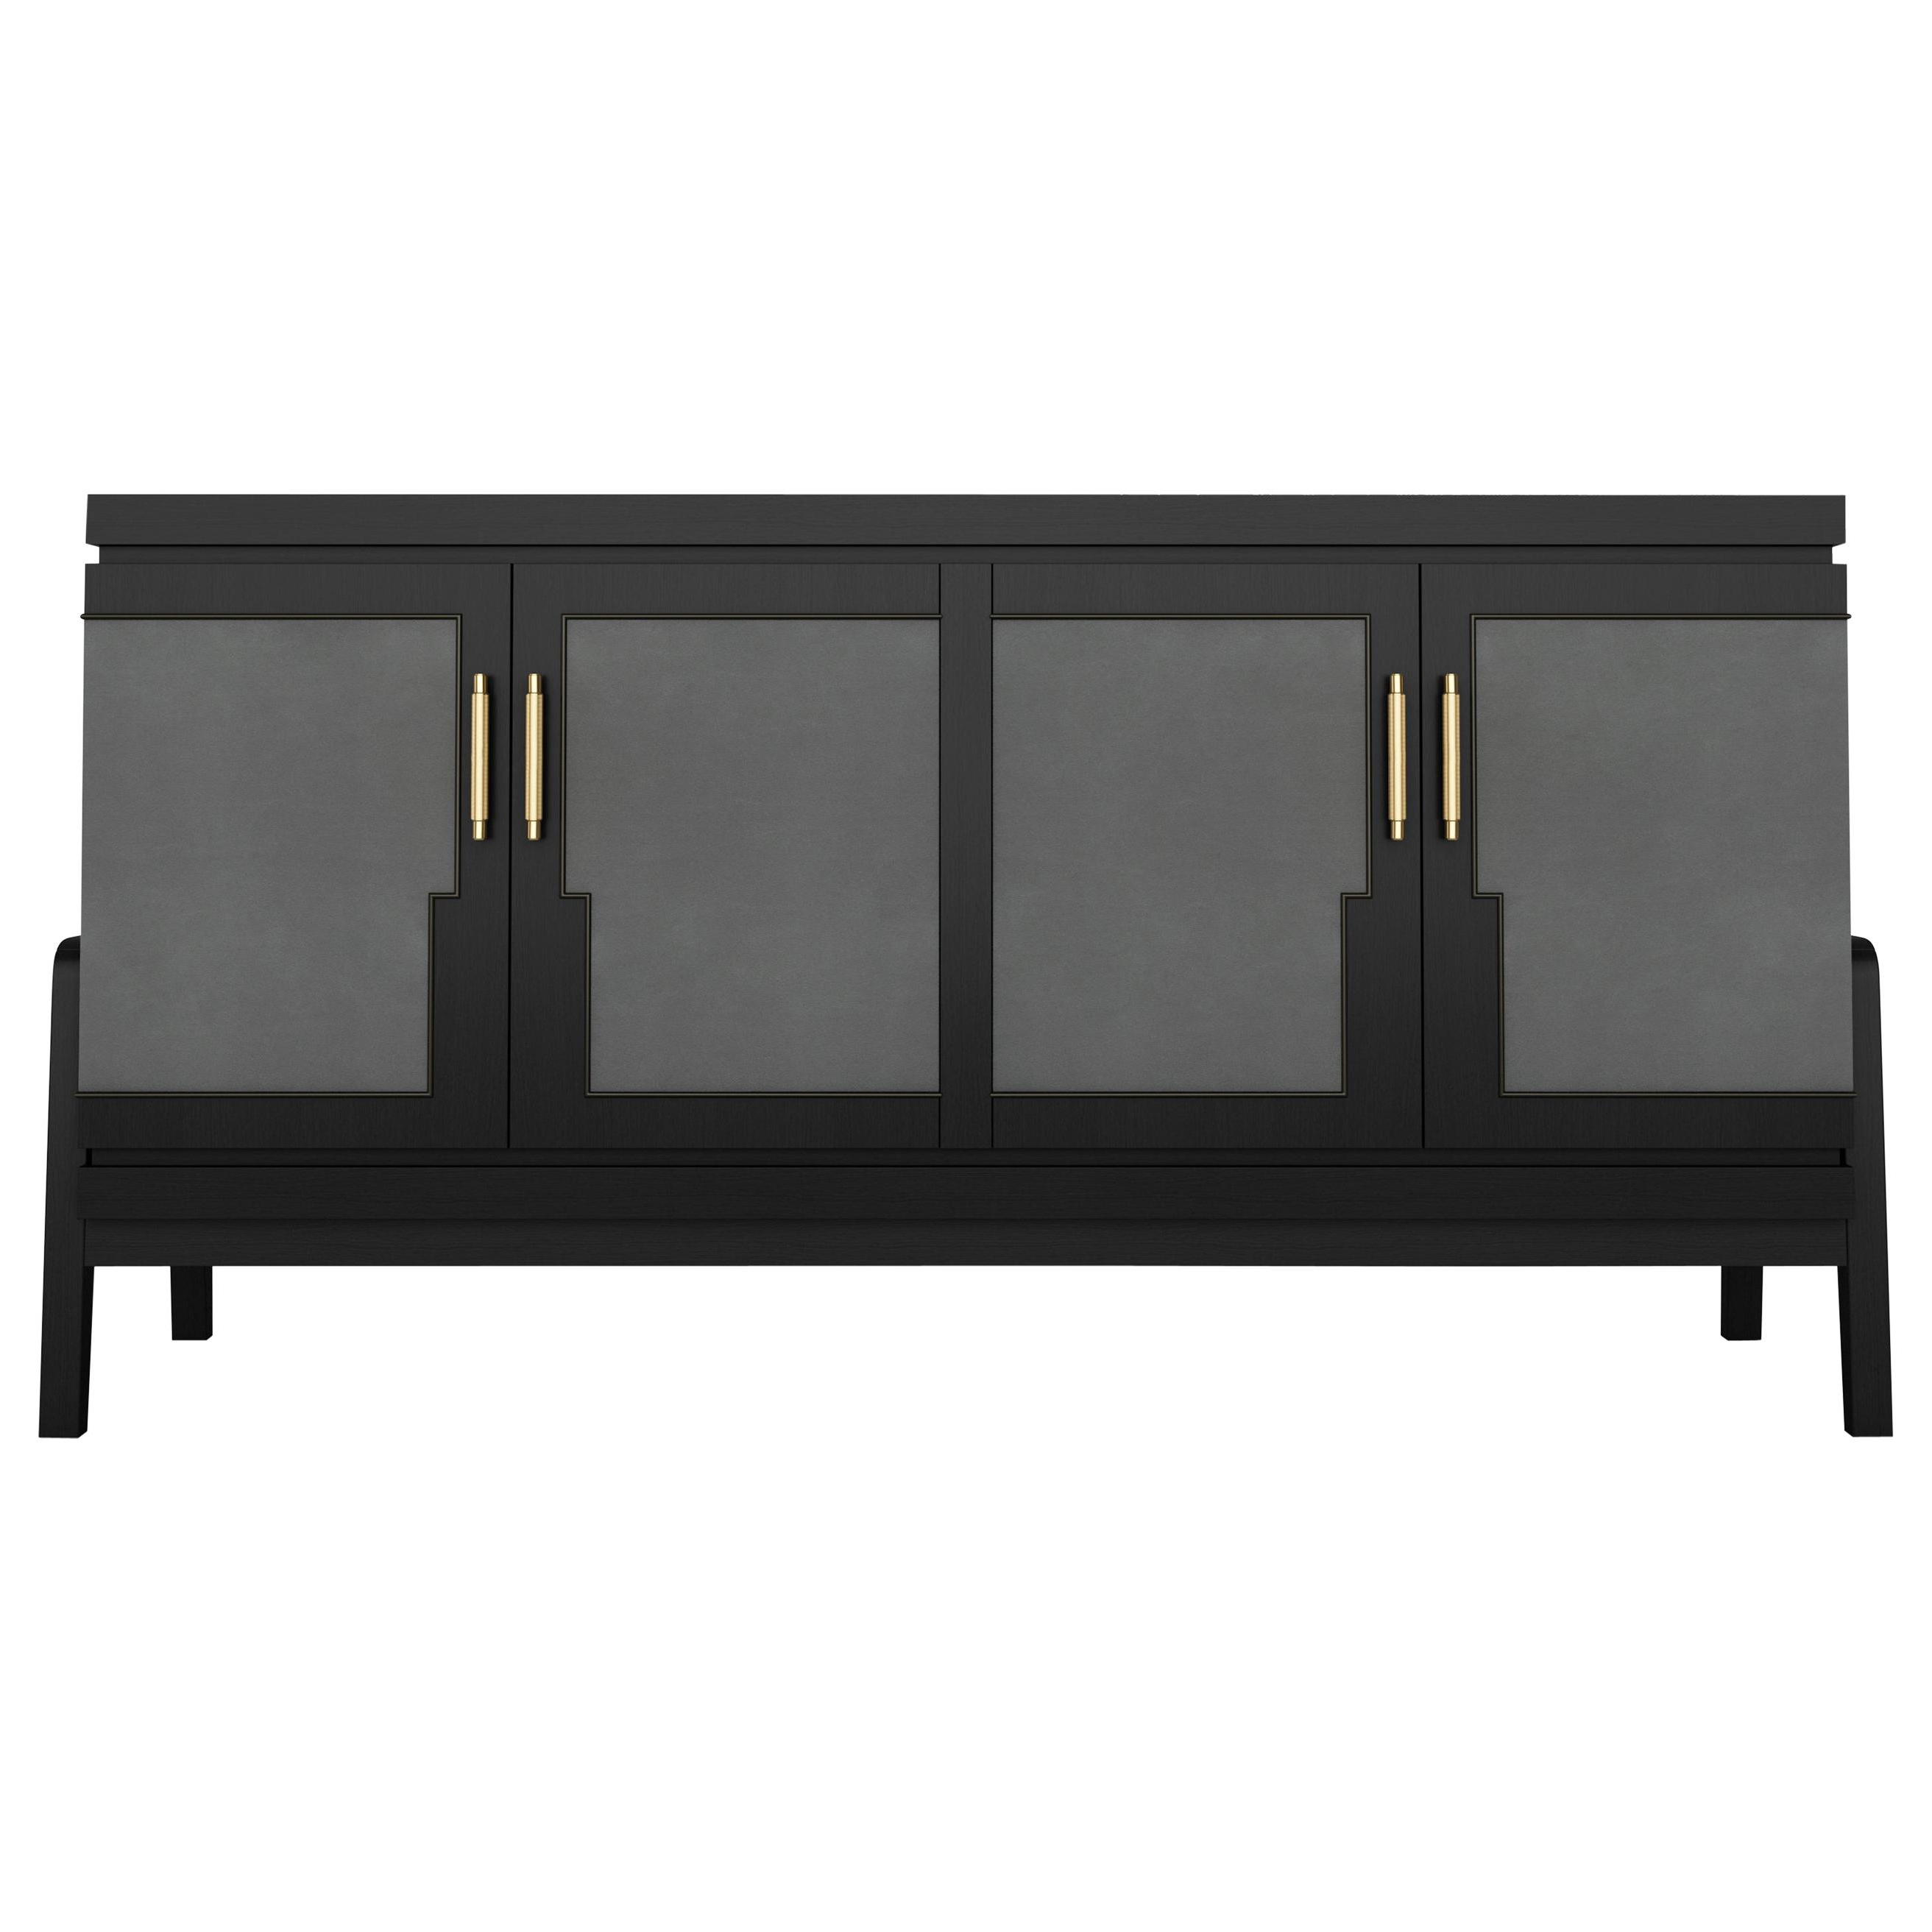 Art Deco Inspired Cupid Credenza In Show Wood And Upholstered With Novasuede Pertaining To Wooden Deconstruction Credenzas (View 13 of 20)